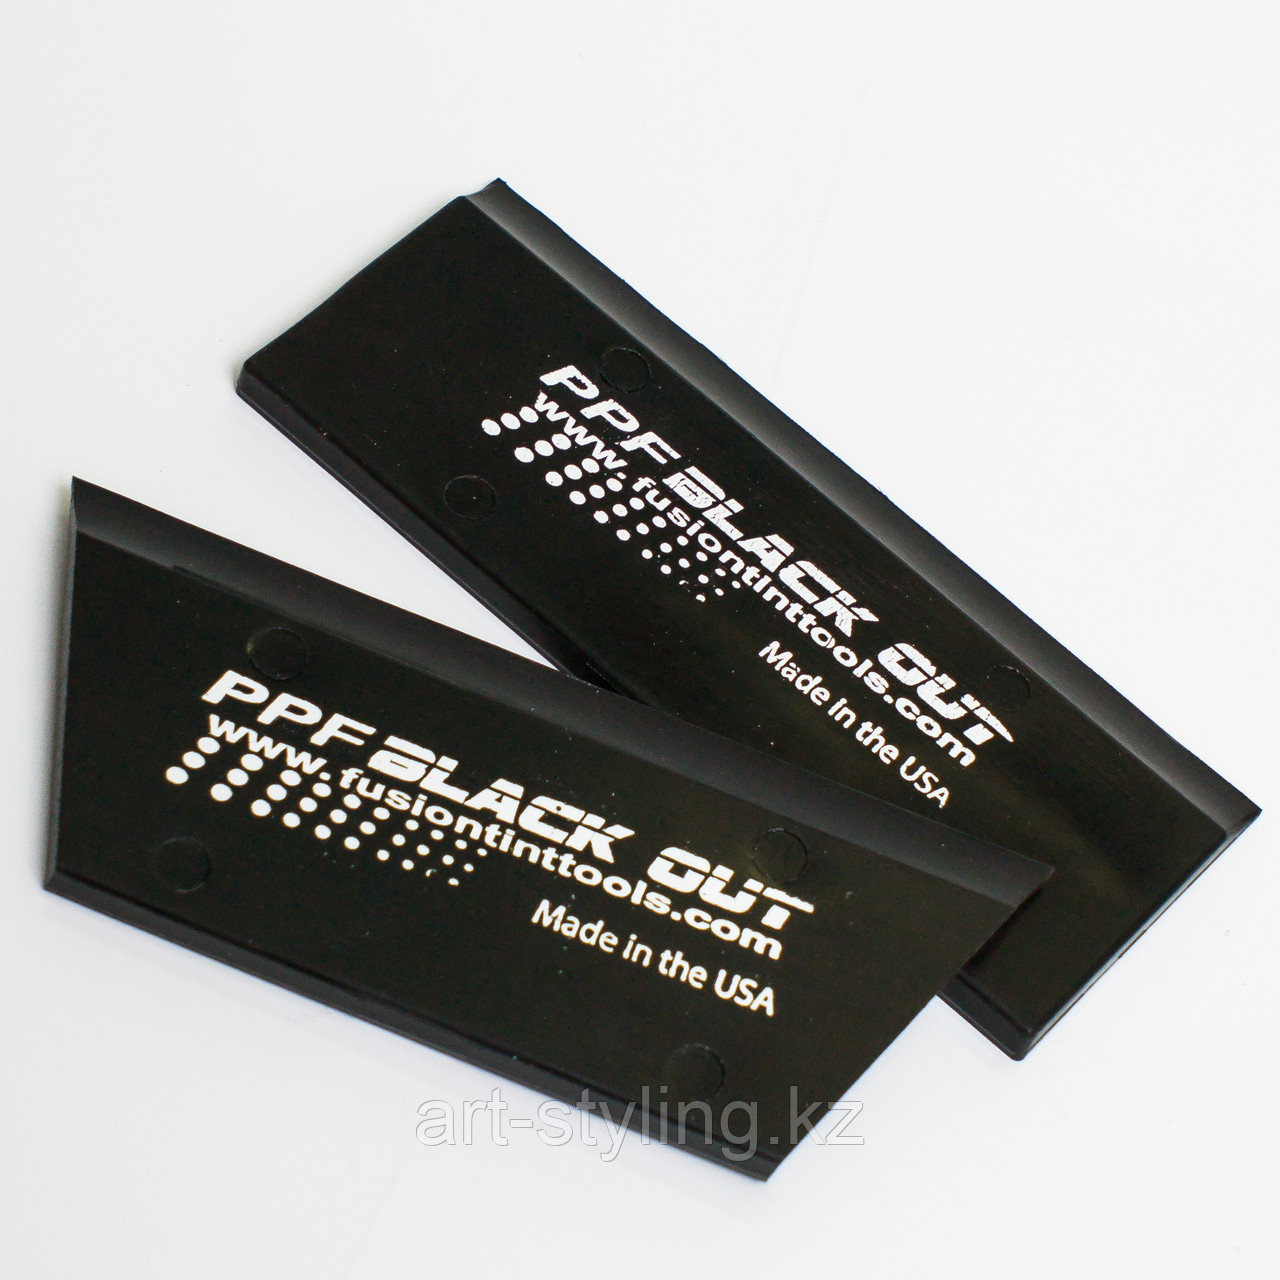 Fusion PPF Black Out Blade Cropped, угловой, 12,8 х 5,2 см